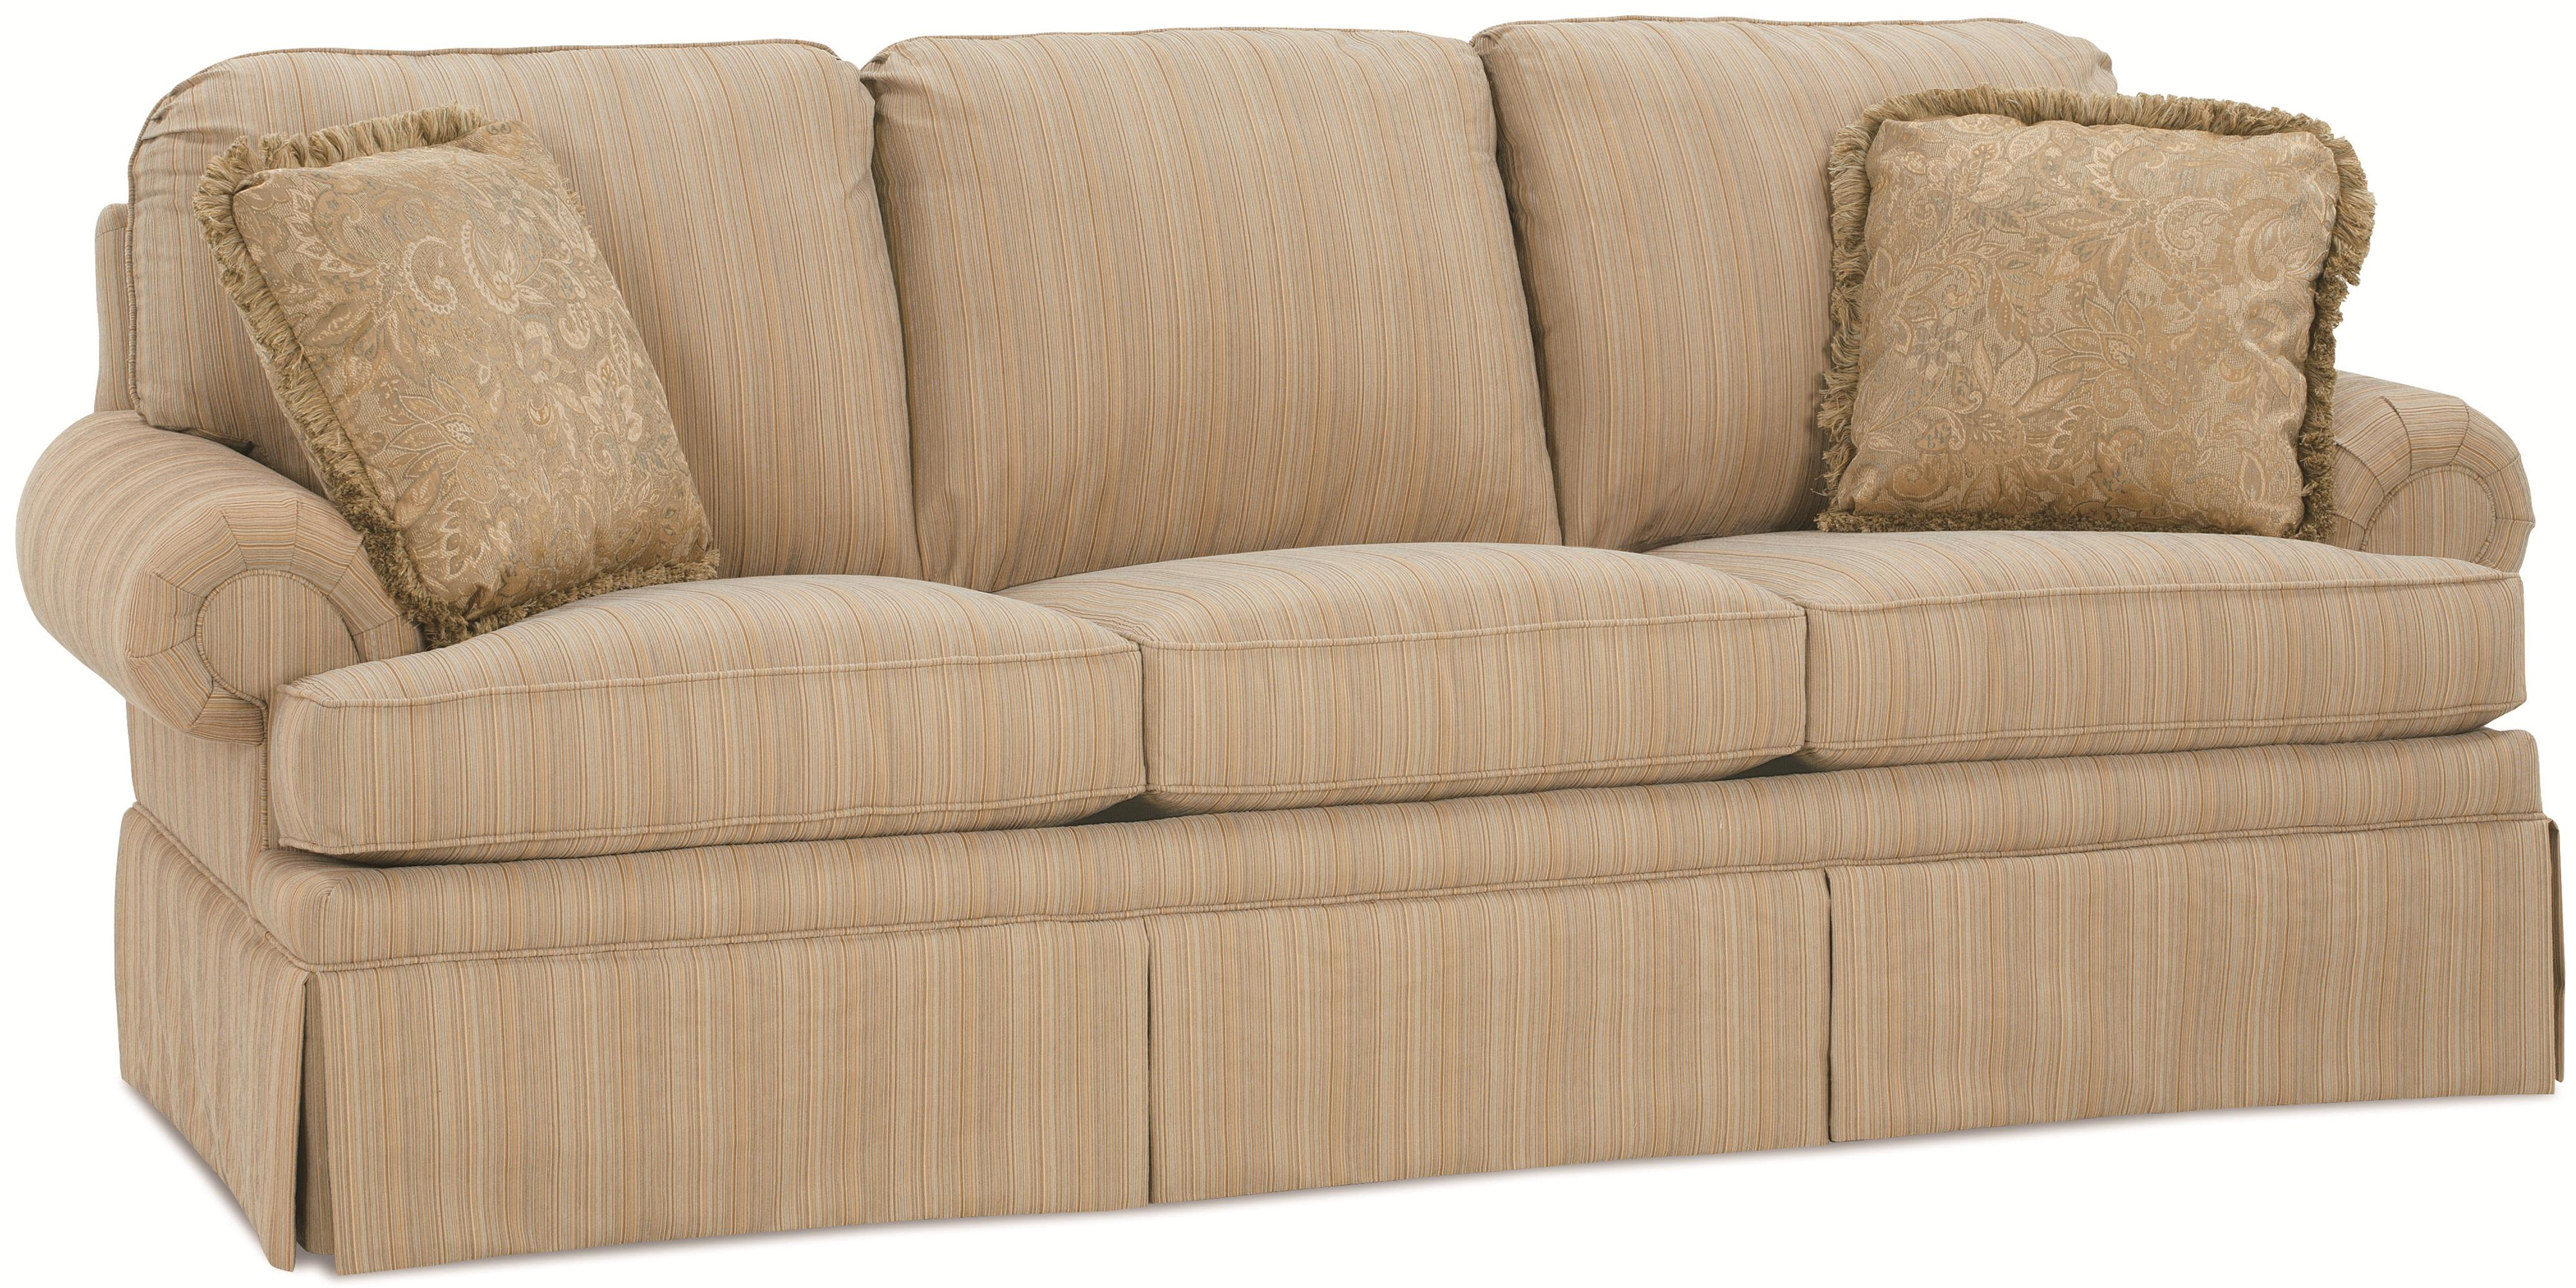 Clayton marcus sofas marvelous clayton marcus sofa images for Traditional settees living room furniture